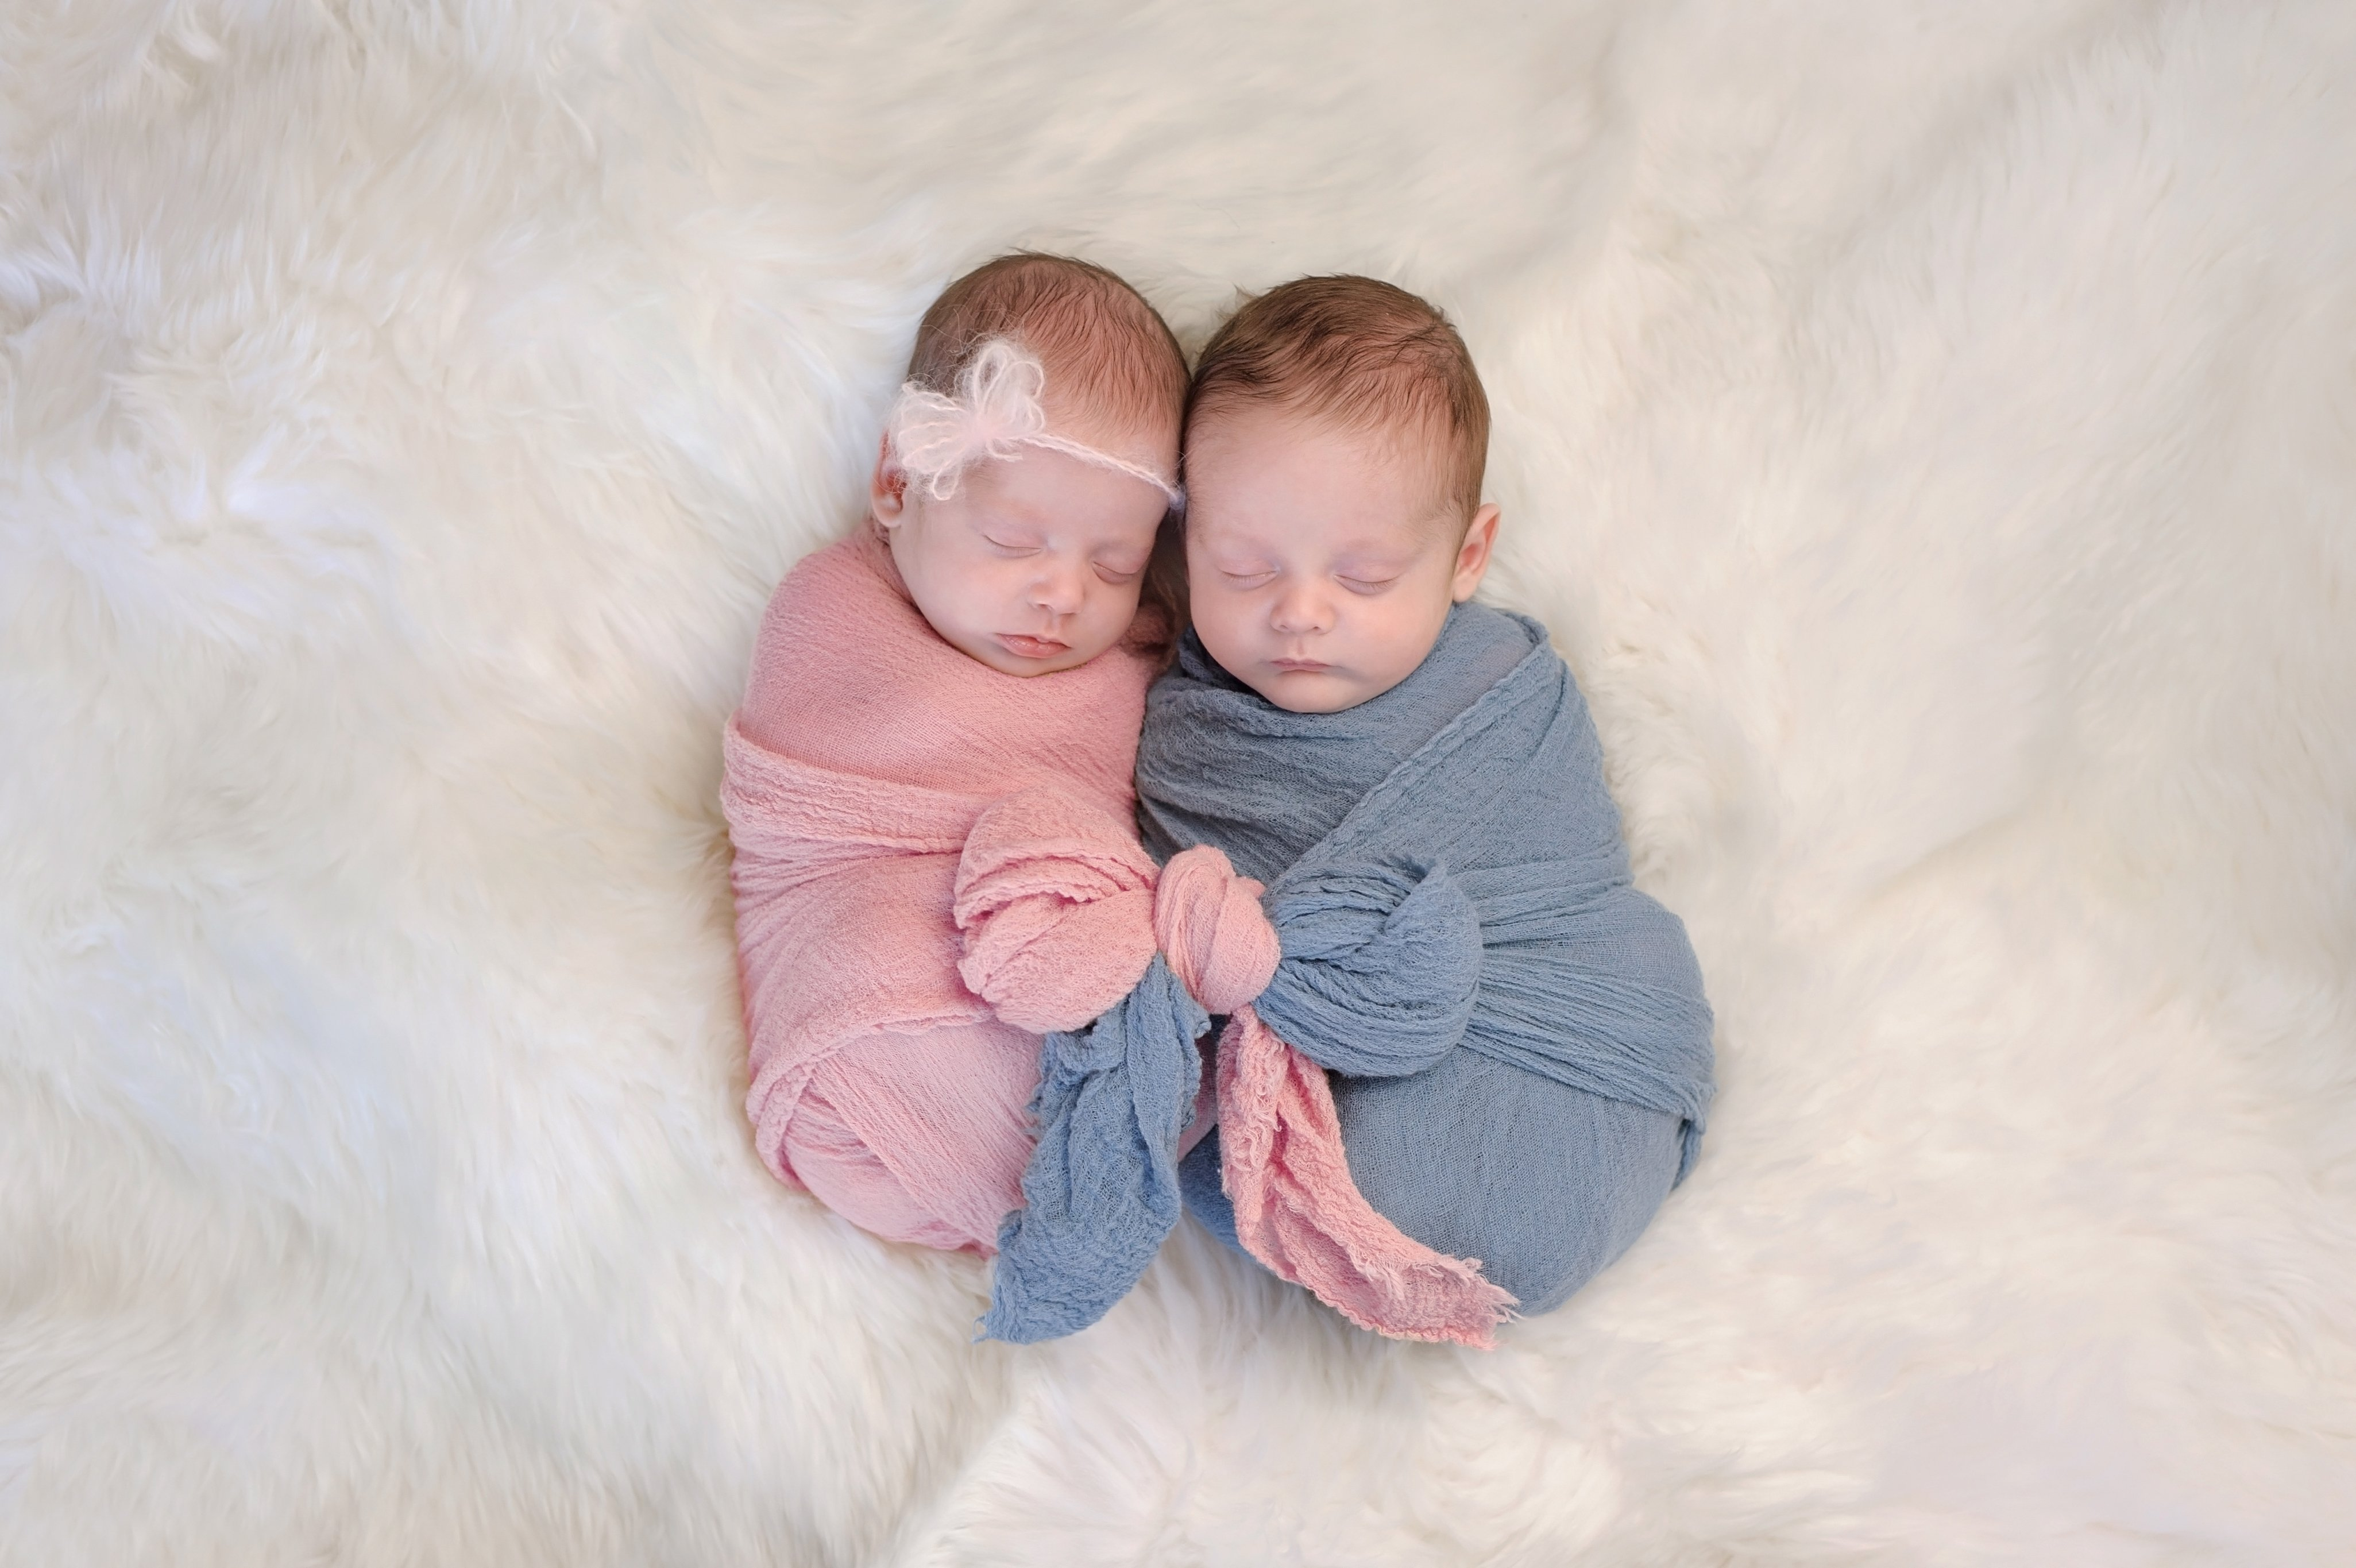 Fraternal twin babies. | Source: Shutterstock